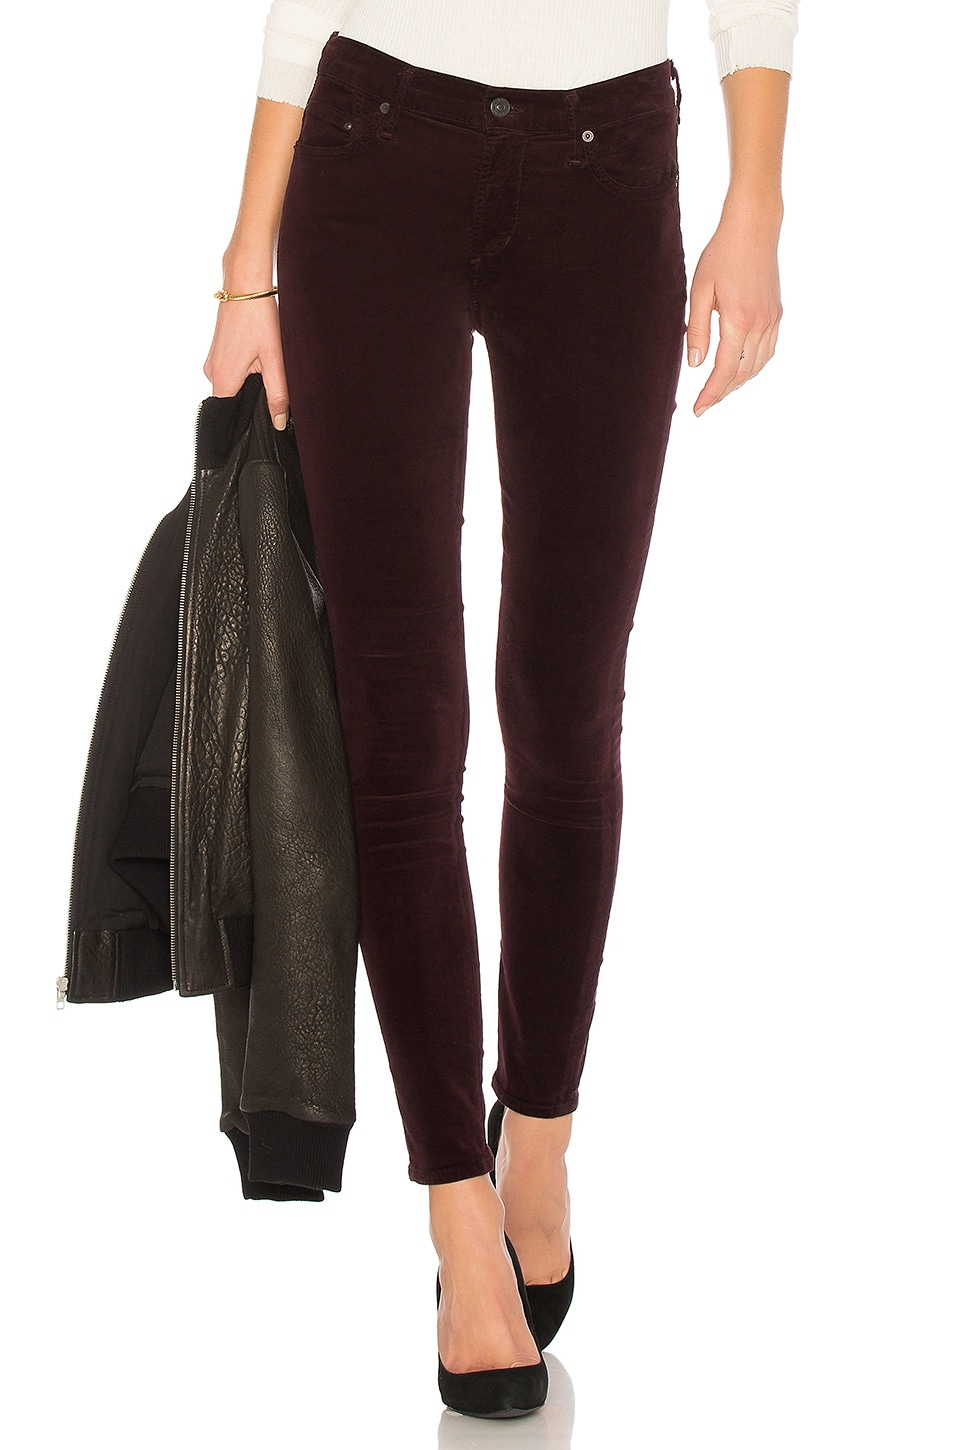 Citizens of Humanity Rocket Skinny in Black Currant